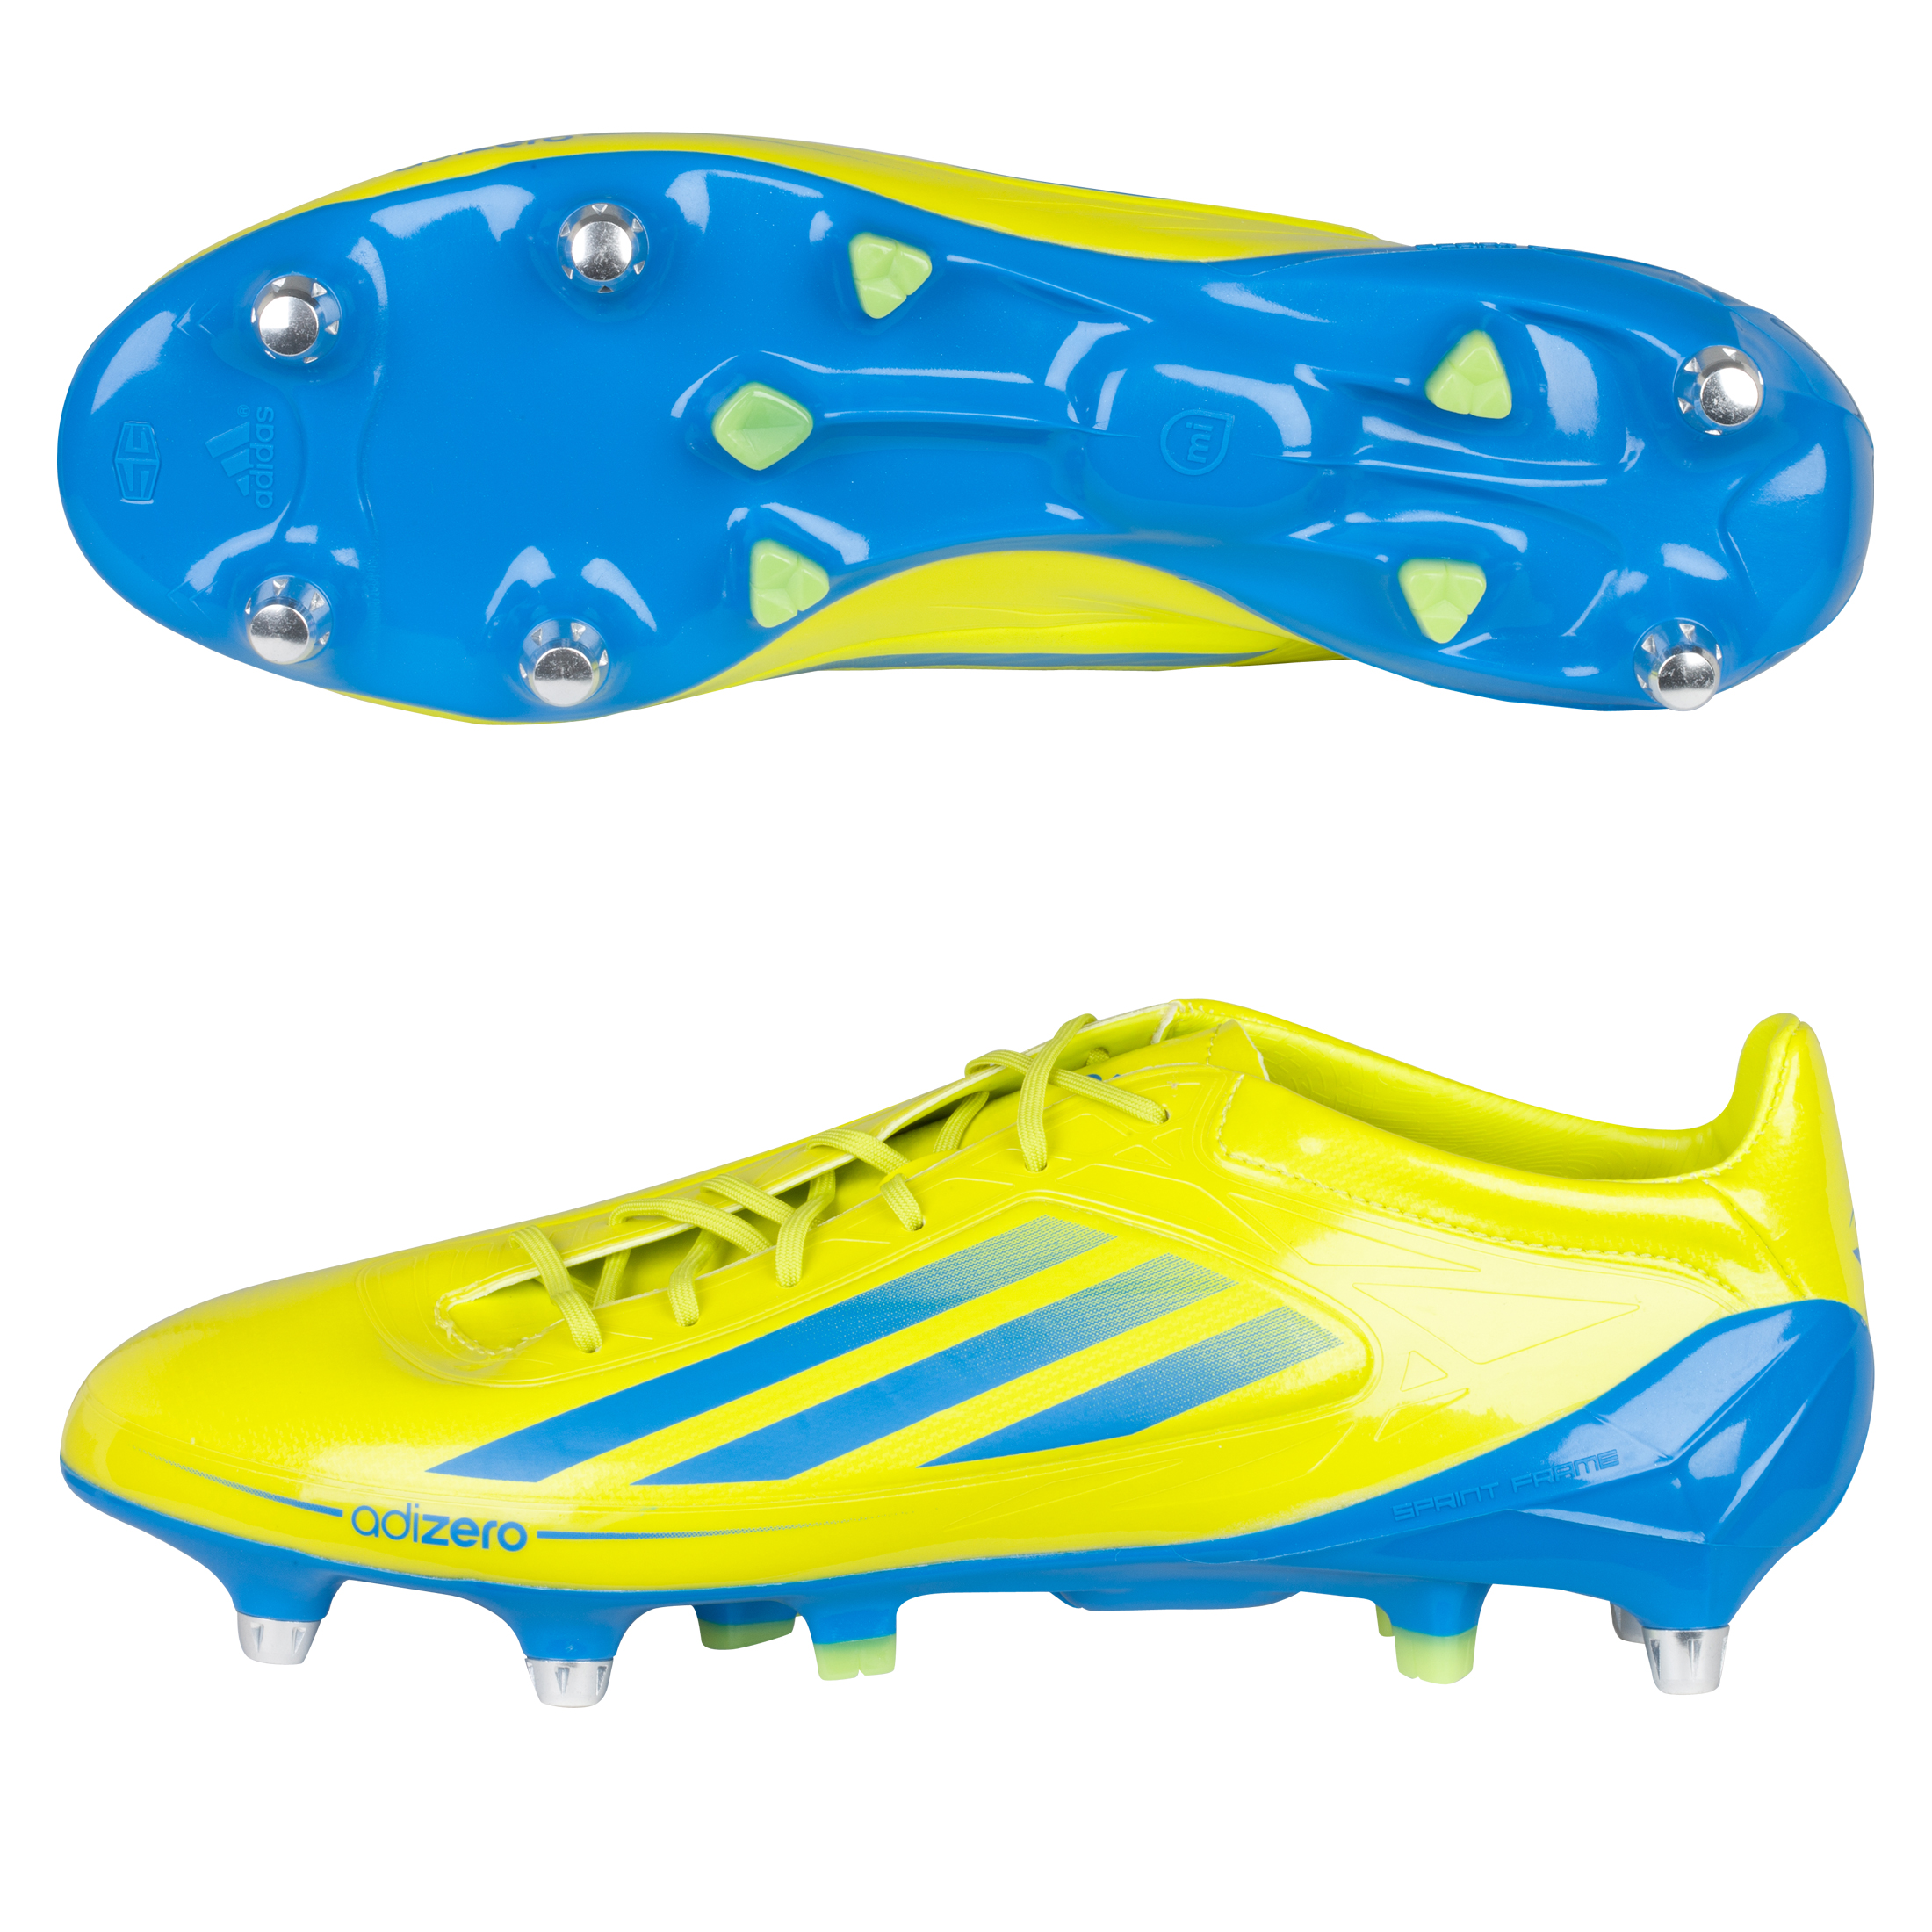 Adizero RS7 Pro II XTRX SG Lab Lime/Bright Blue